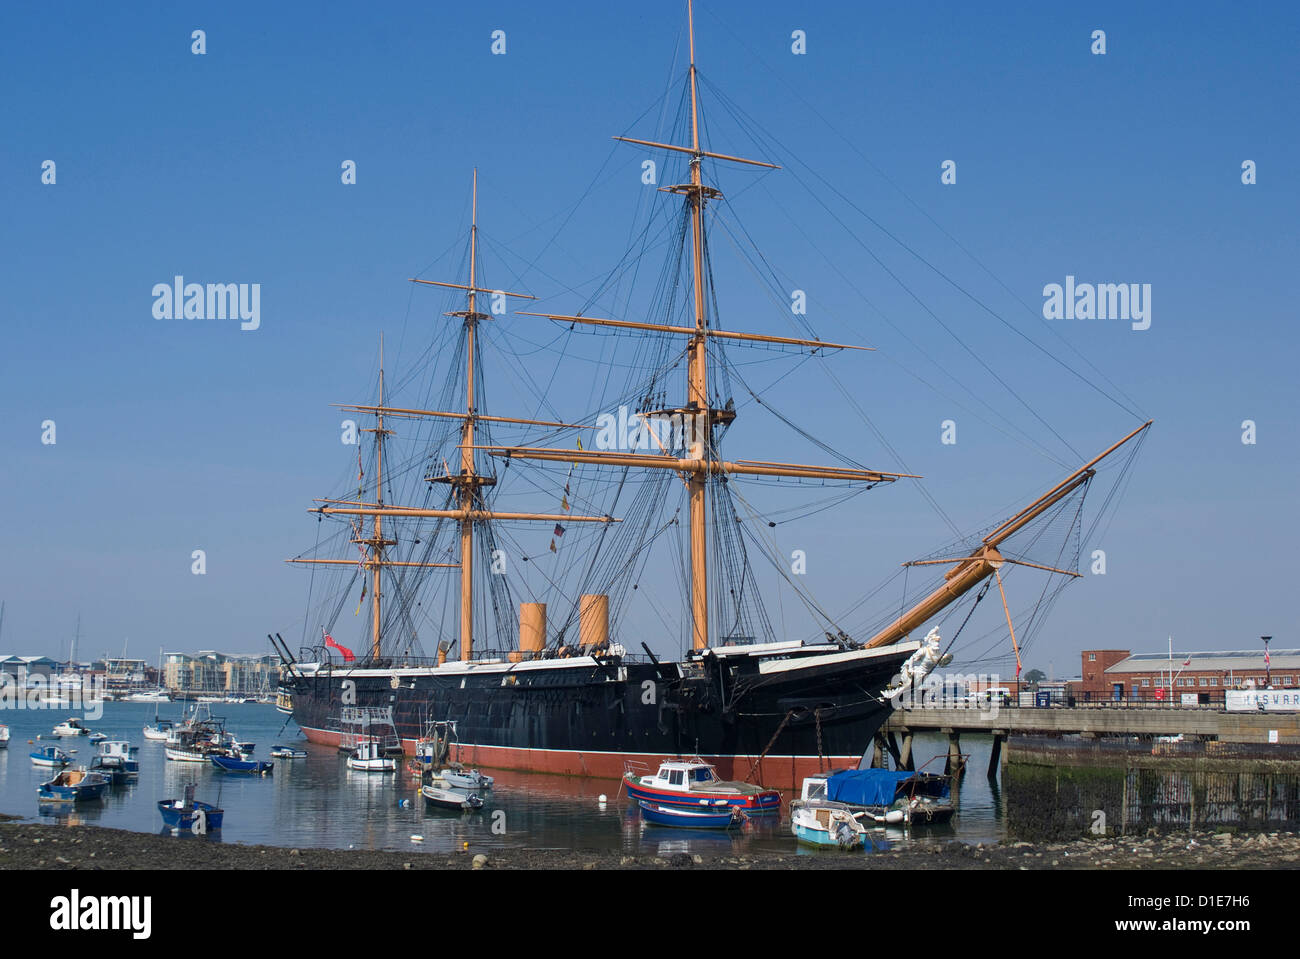 HMS Warrior, built for the Royal Navy in 1860, Portsmouth Historic Docks, Portsmouth, Hampshire, England - Stock Image